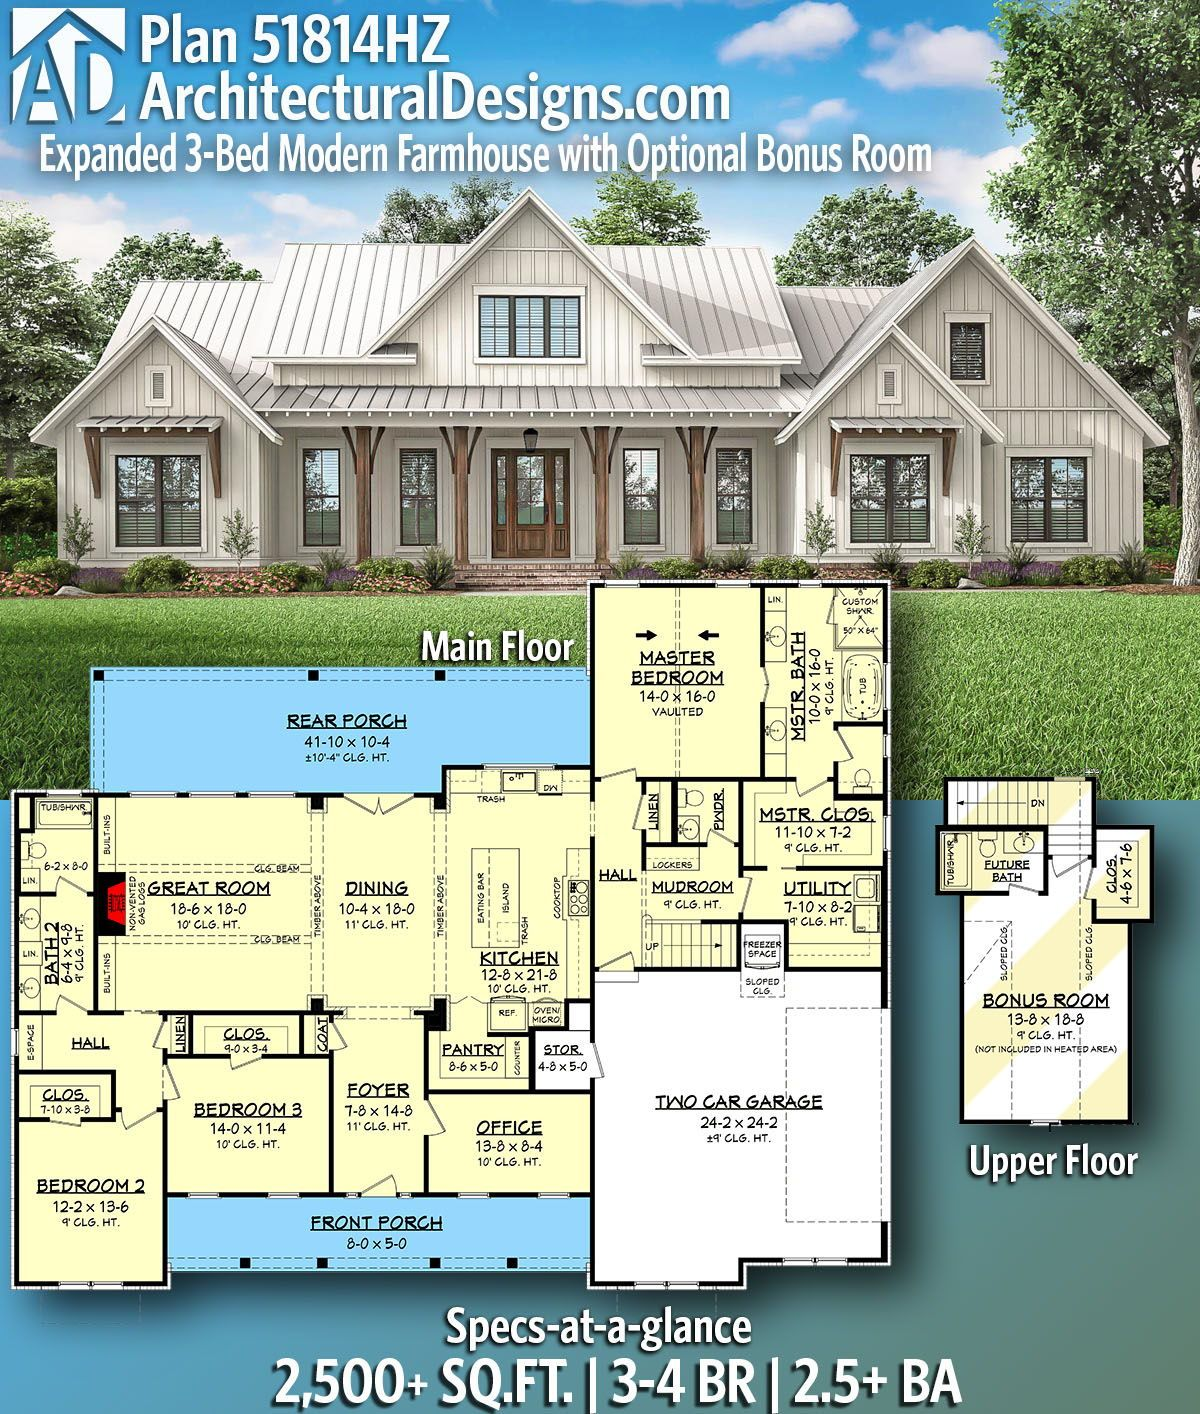 Plan 51814hz Expanded 3 Bed Modern Farmhouse With Optional Bonus Room Modern Farmhouse Plans New House Plans House Plans Farmhouse